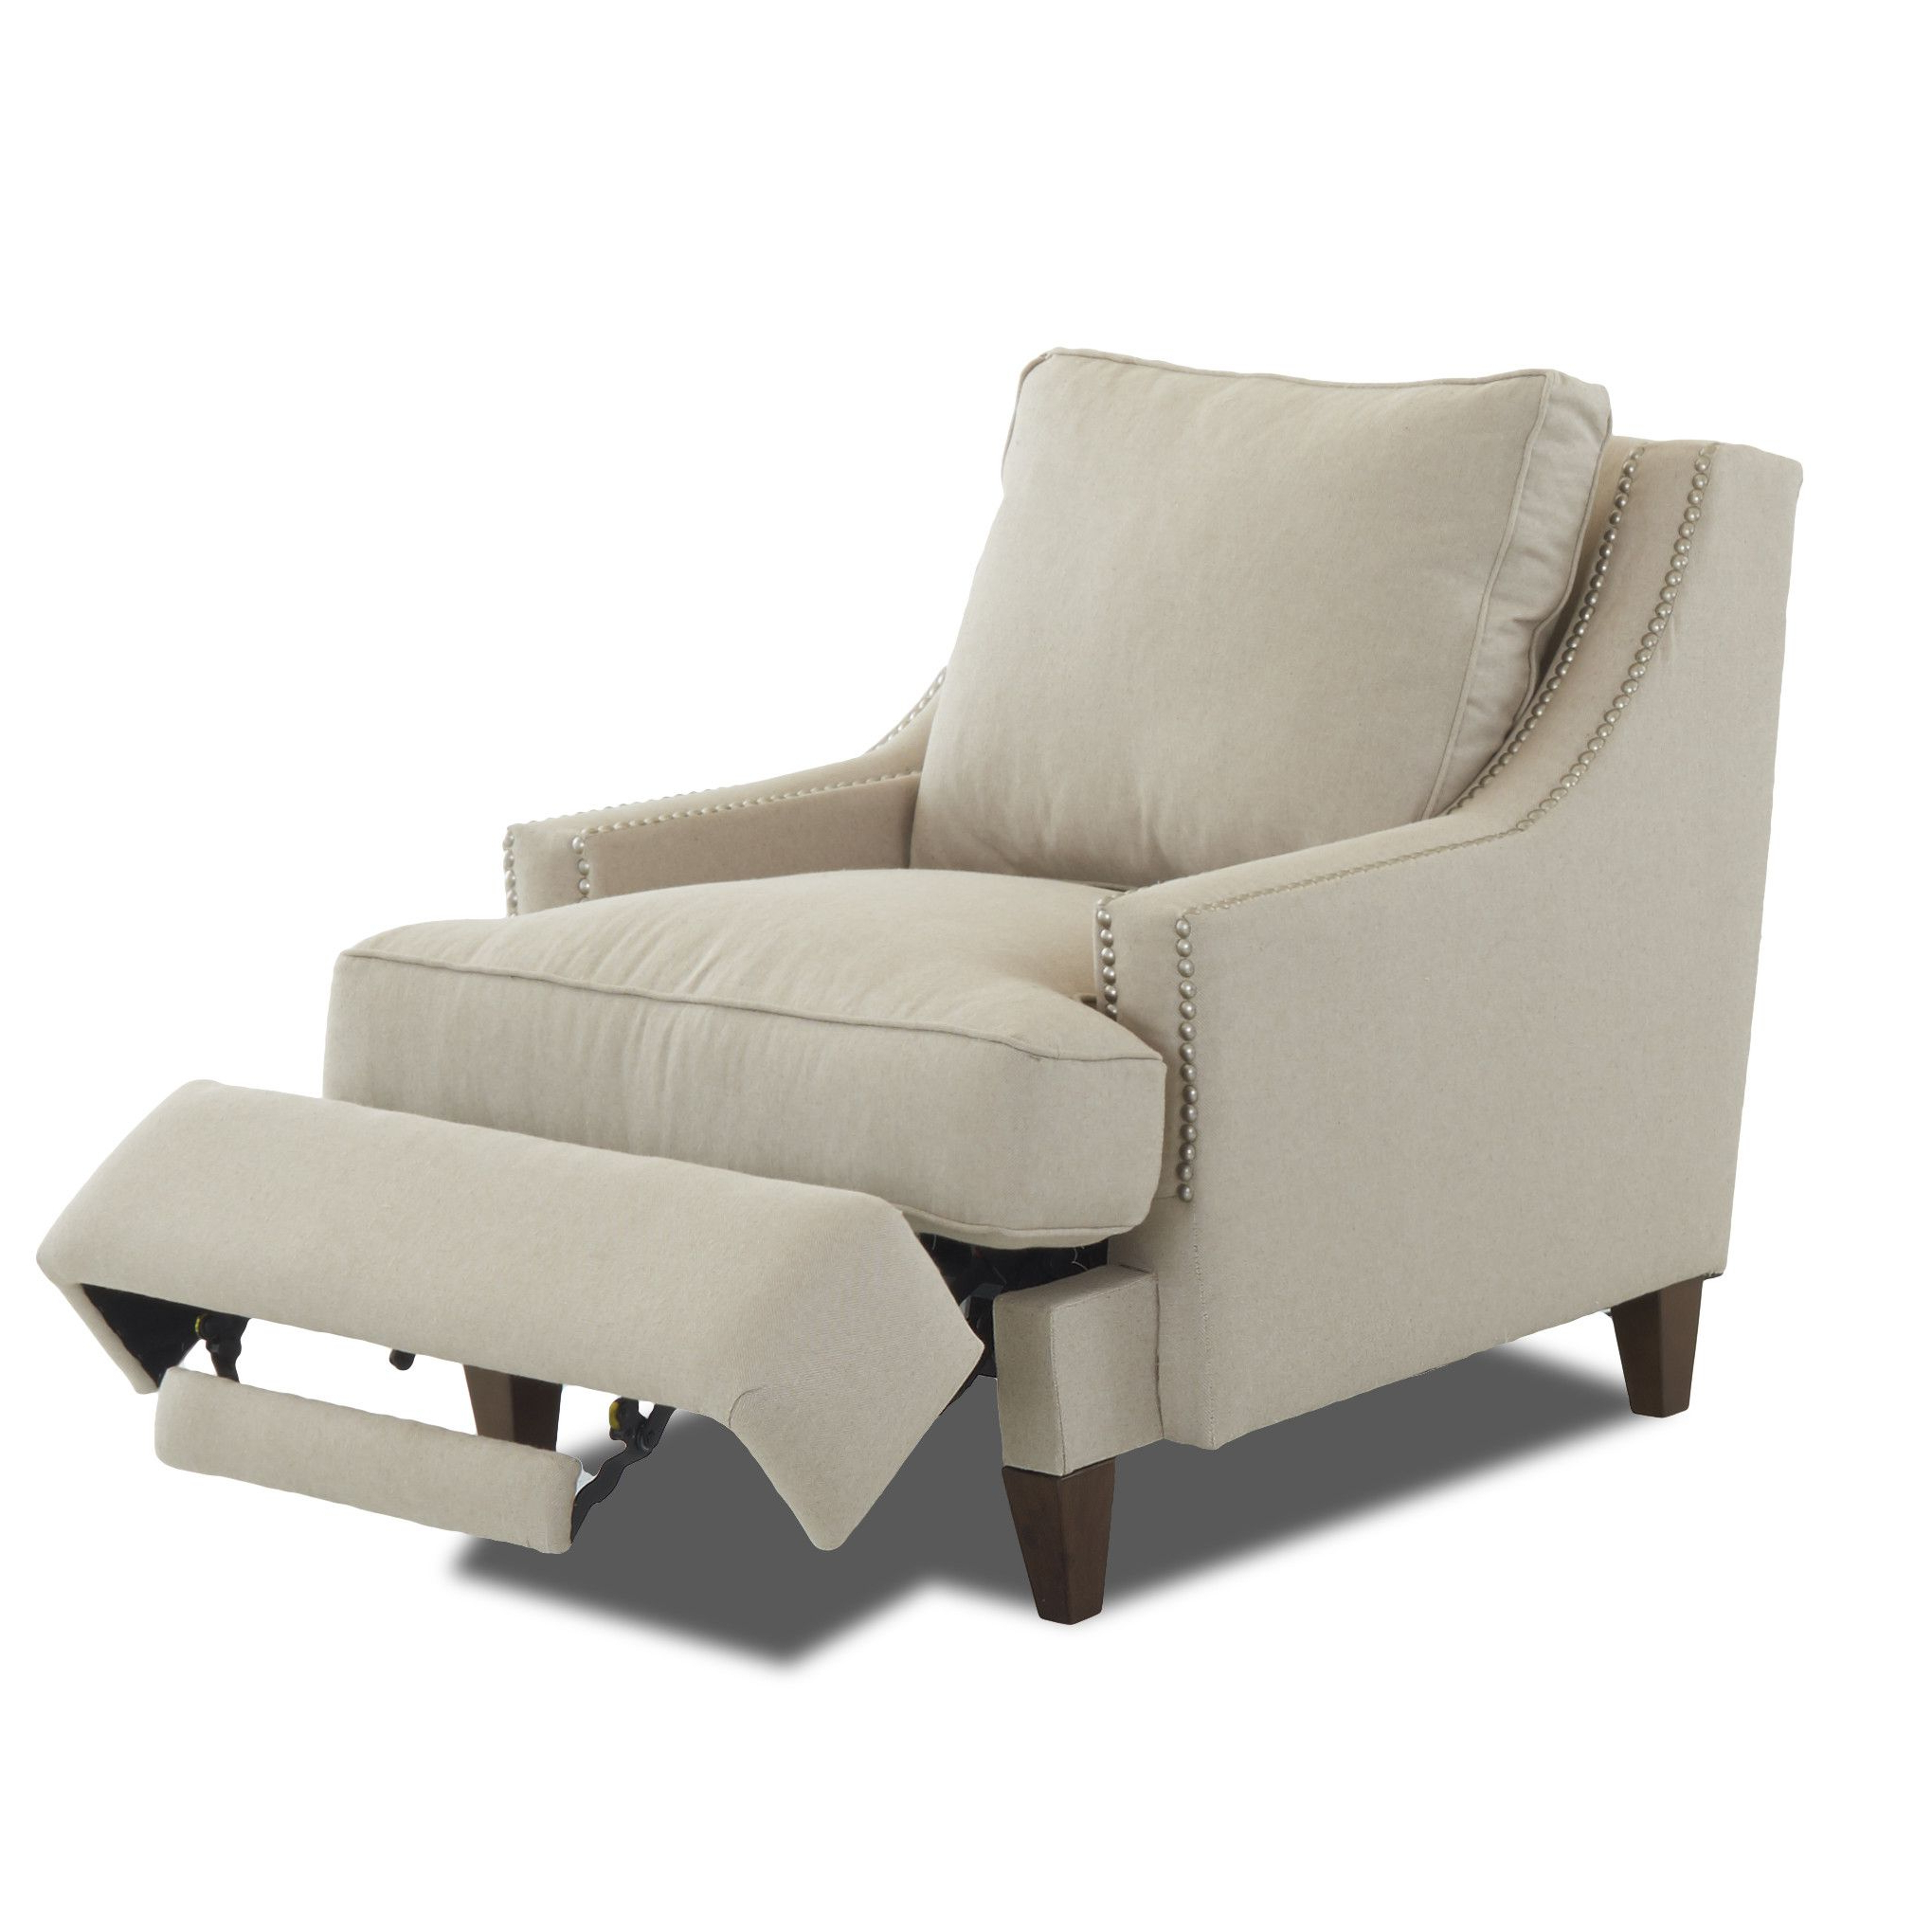 Tricia Power Recliner (View 19 of 20)